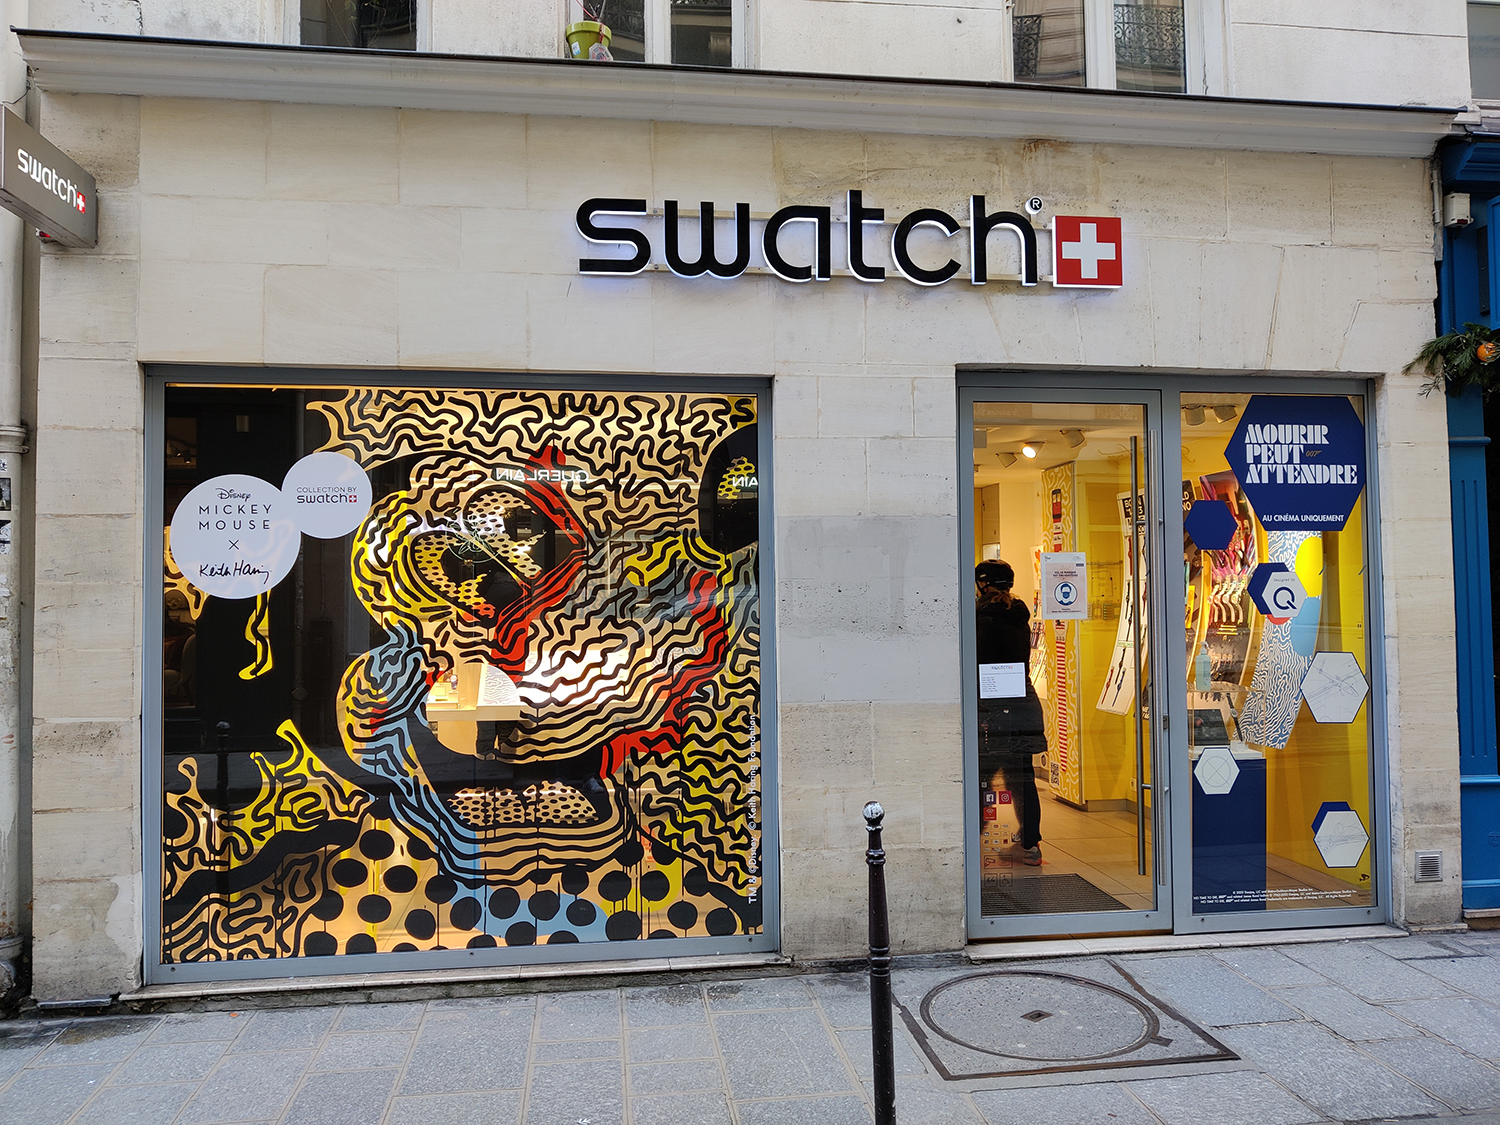 Swatch Franc Bourgeois Keith Haring Disney